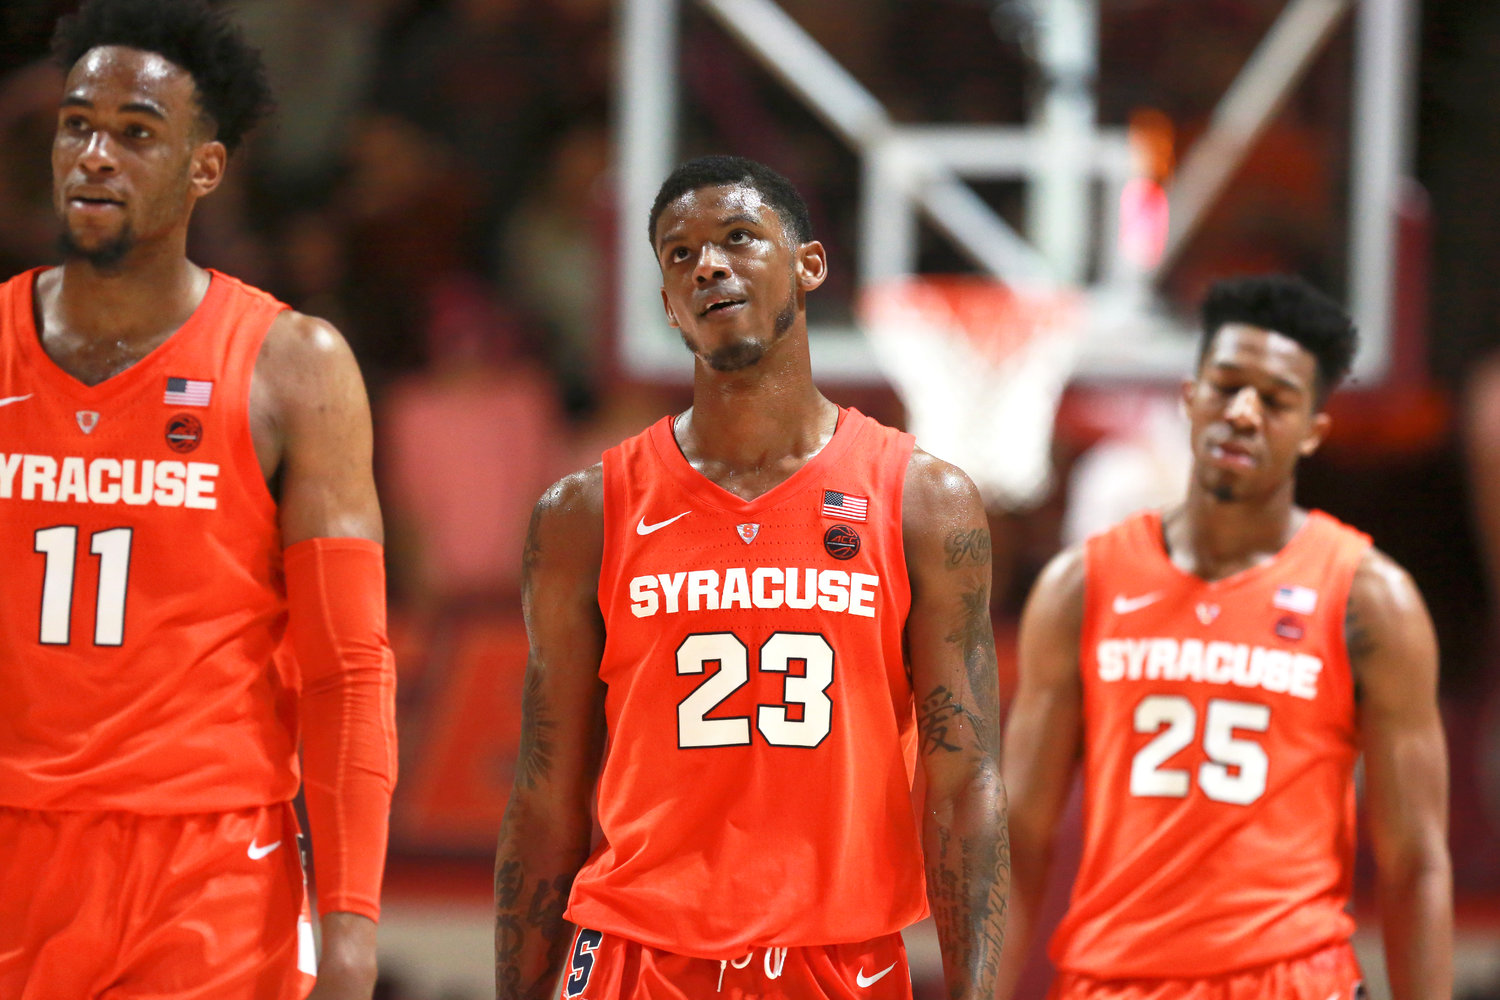 NO FUN — Syracuse teammates, from left, Oshae Brissett, Frank Howard and Tyus Battle look at the scoreboard during the second half of Saturday night's 78-56 loss to Virginia Tech in Blacksburg, Va.